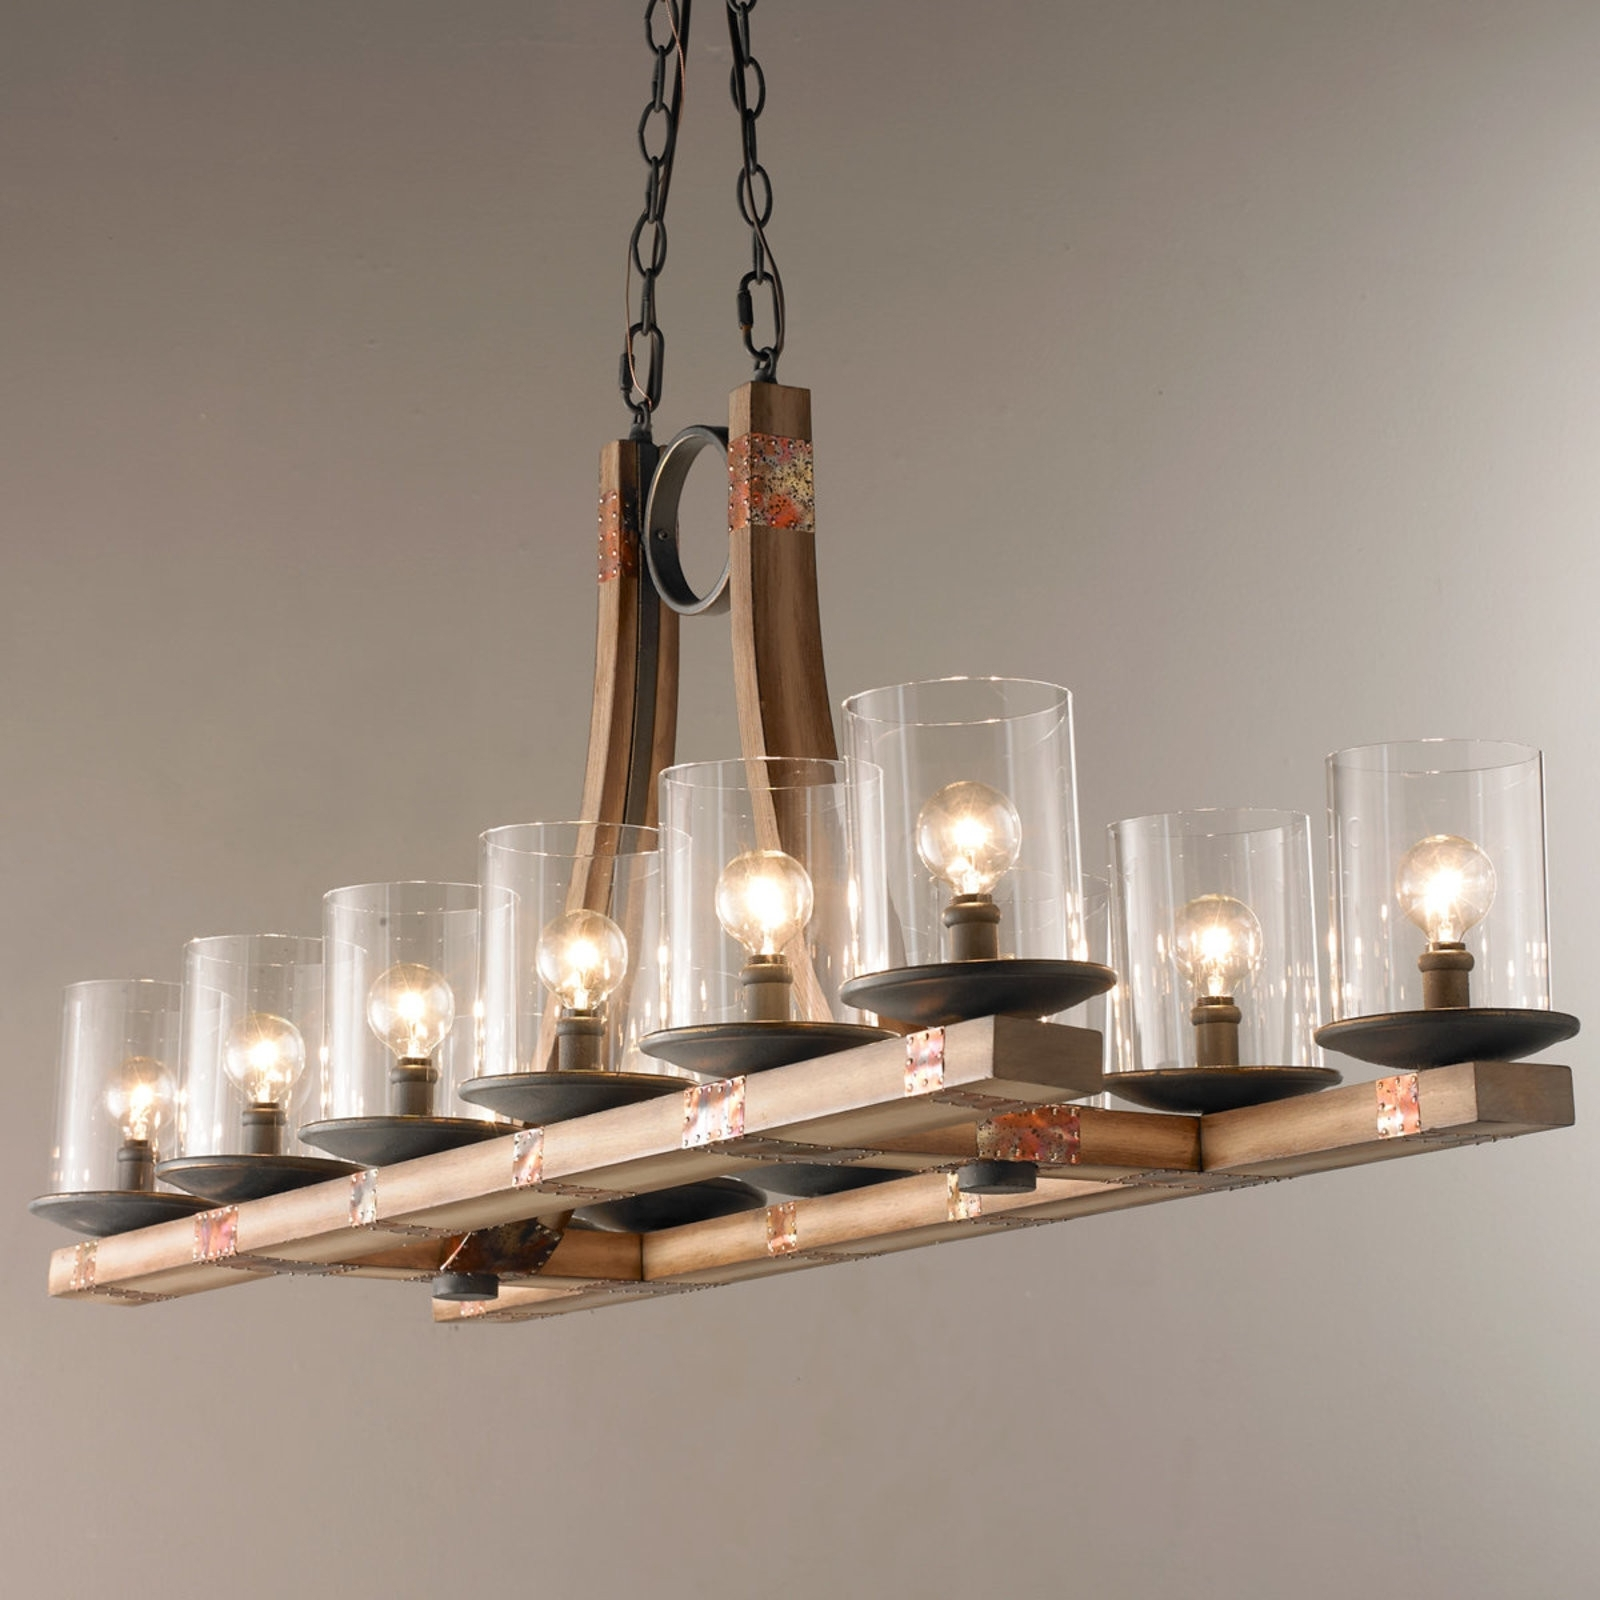 Well Liked Hanging Candle Chandeliers In Hanging Candle Chandelier Wooden – Chandelier Designs (View 19 of 20)